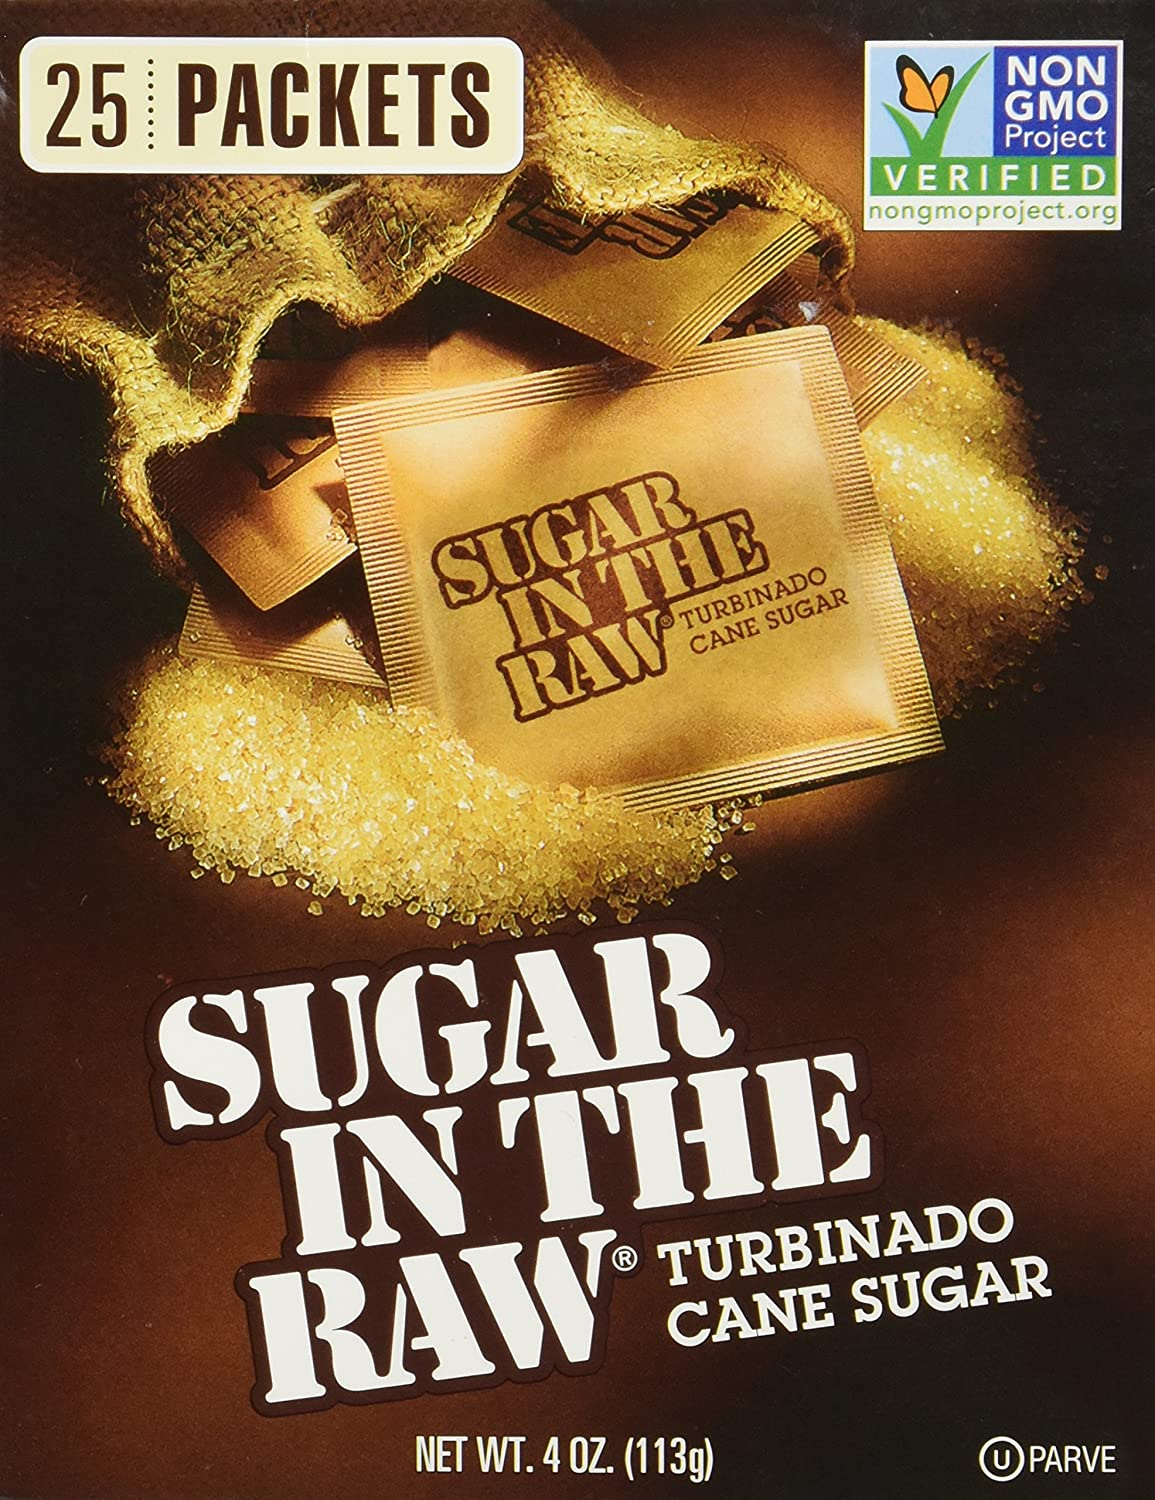 SUGAR Brand new IN Direct store THE RAW 25 PACKETS